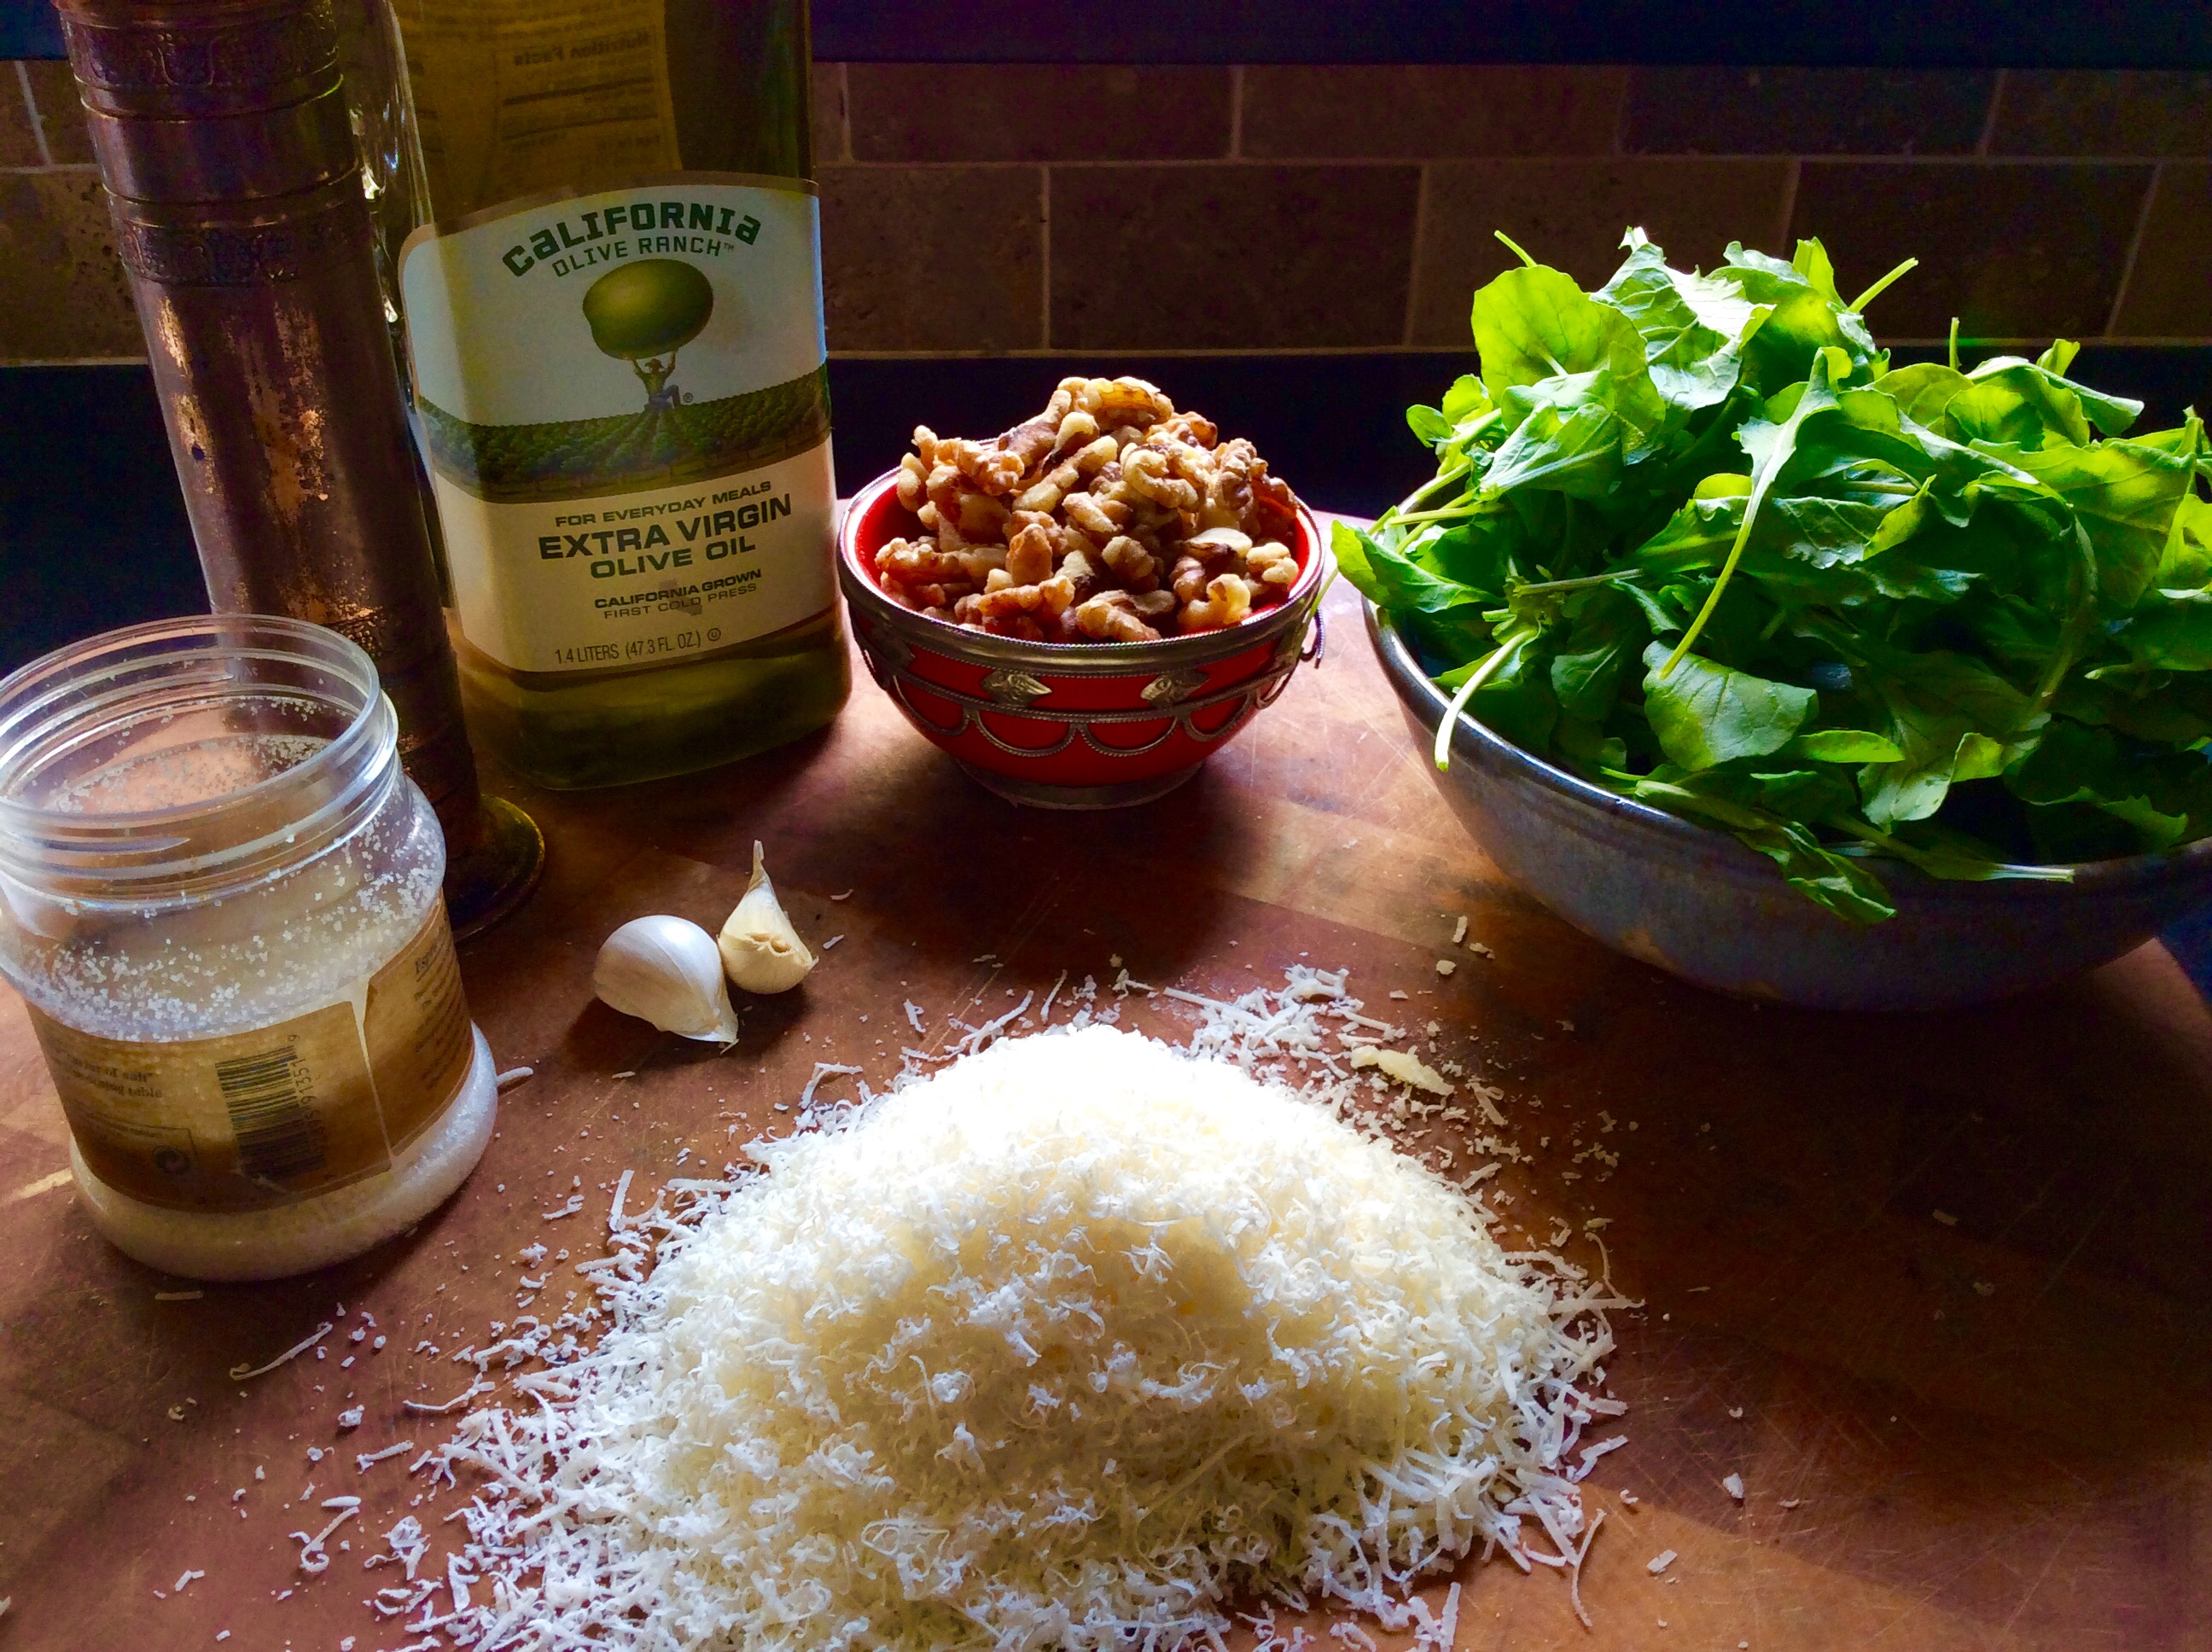 3 Cups Fresh Baby Arugula 1 2 Cup Walnuts 1 2 Cup Olive Oil 1 Clove Garlic 1 Teaspoon Salt 1 4 Teaspoon Pepper 1 2 Cup One Tablespoon Grated Parmigiano